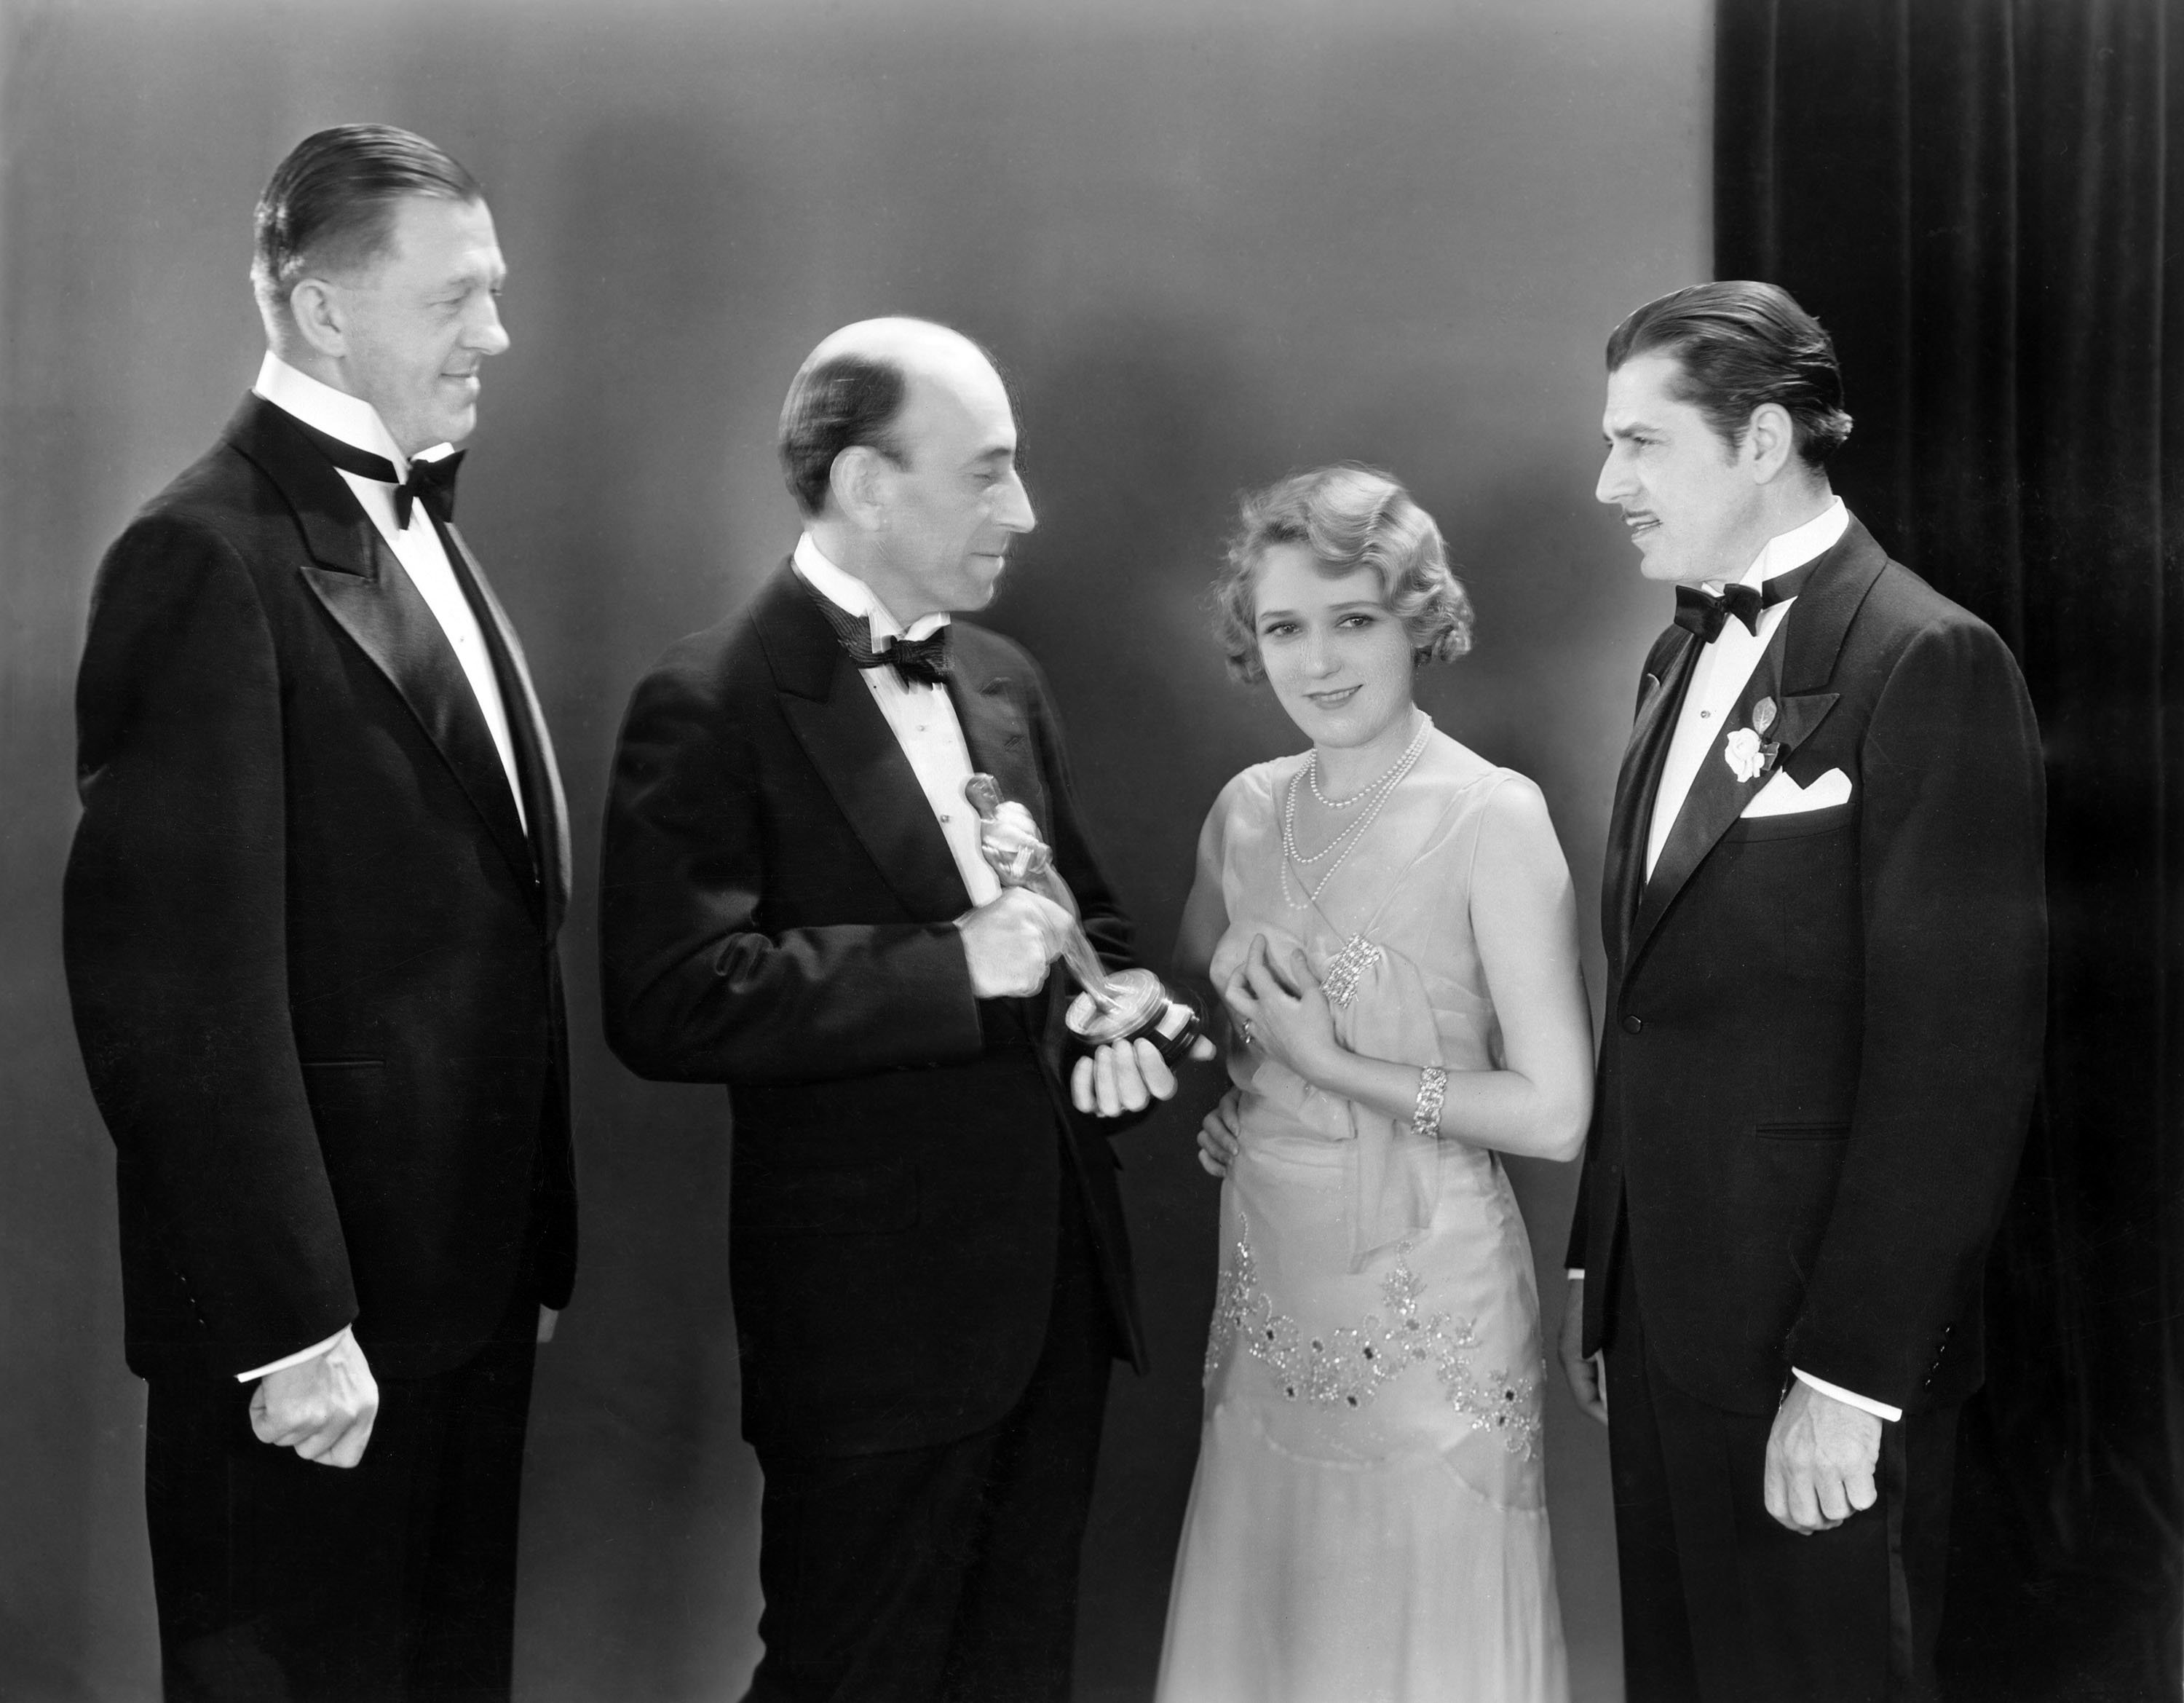 1930 the 2nd academy award winners oscar history